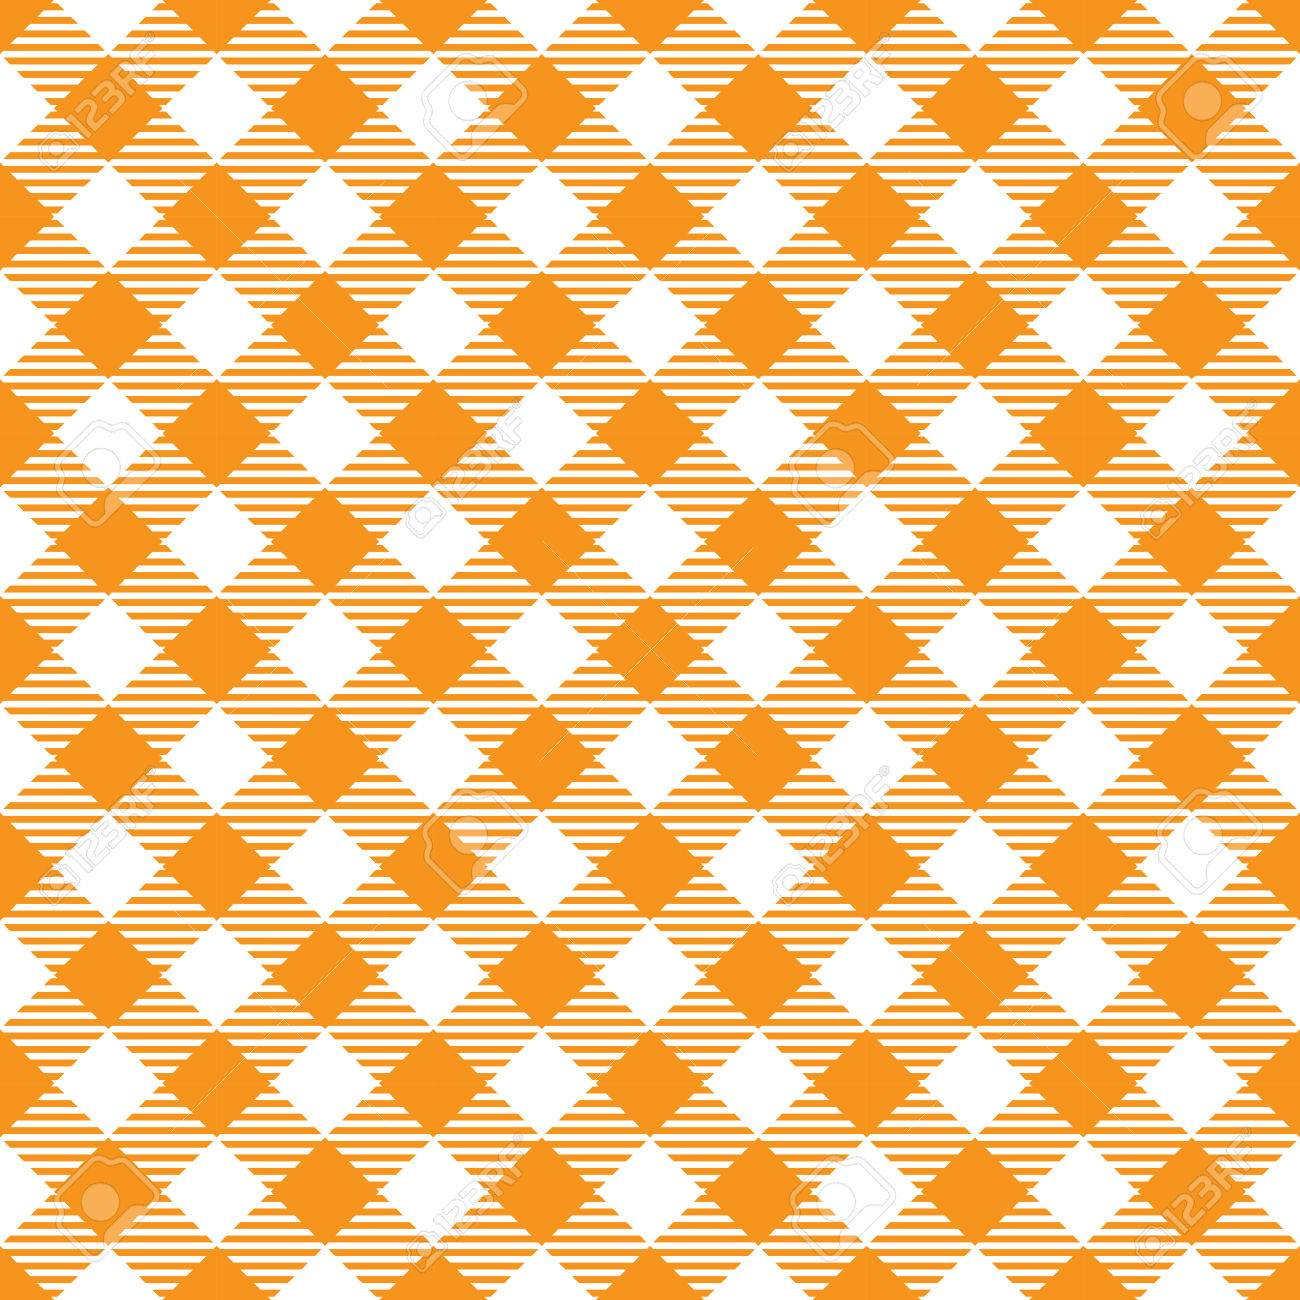 Seamless Yellow White Traditional Gingham Pattern Fabric Texture For Design Stock Vector